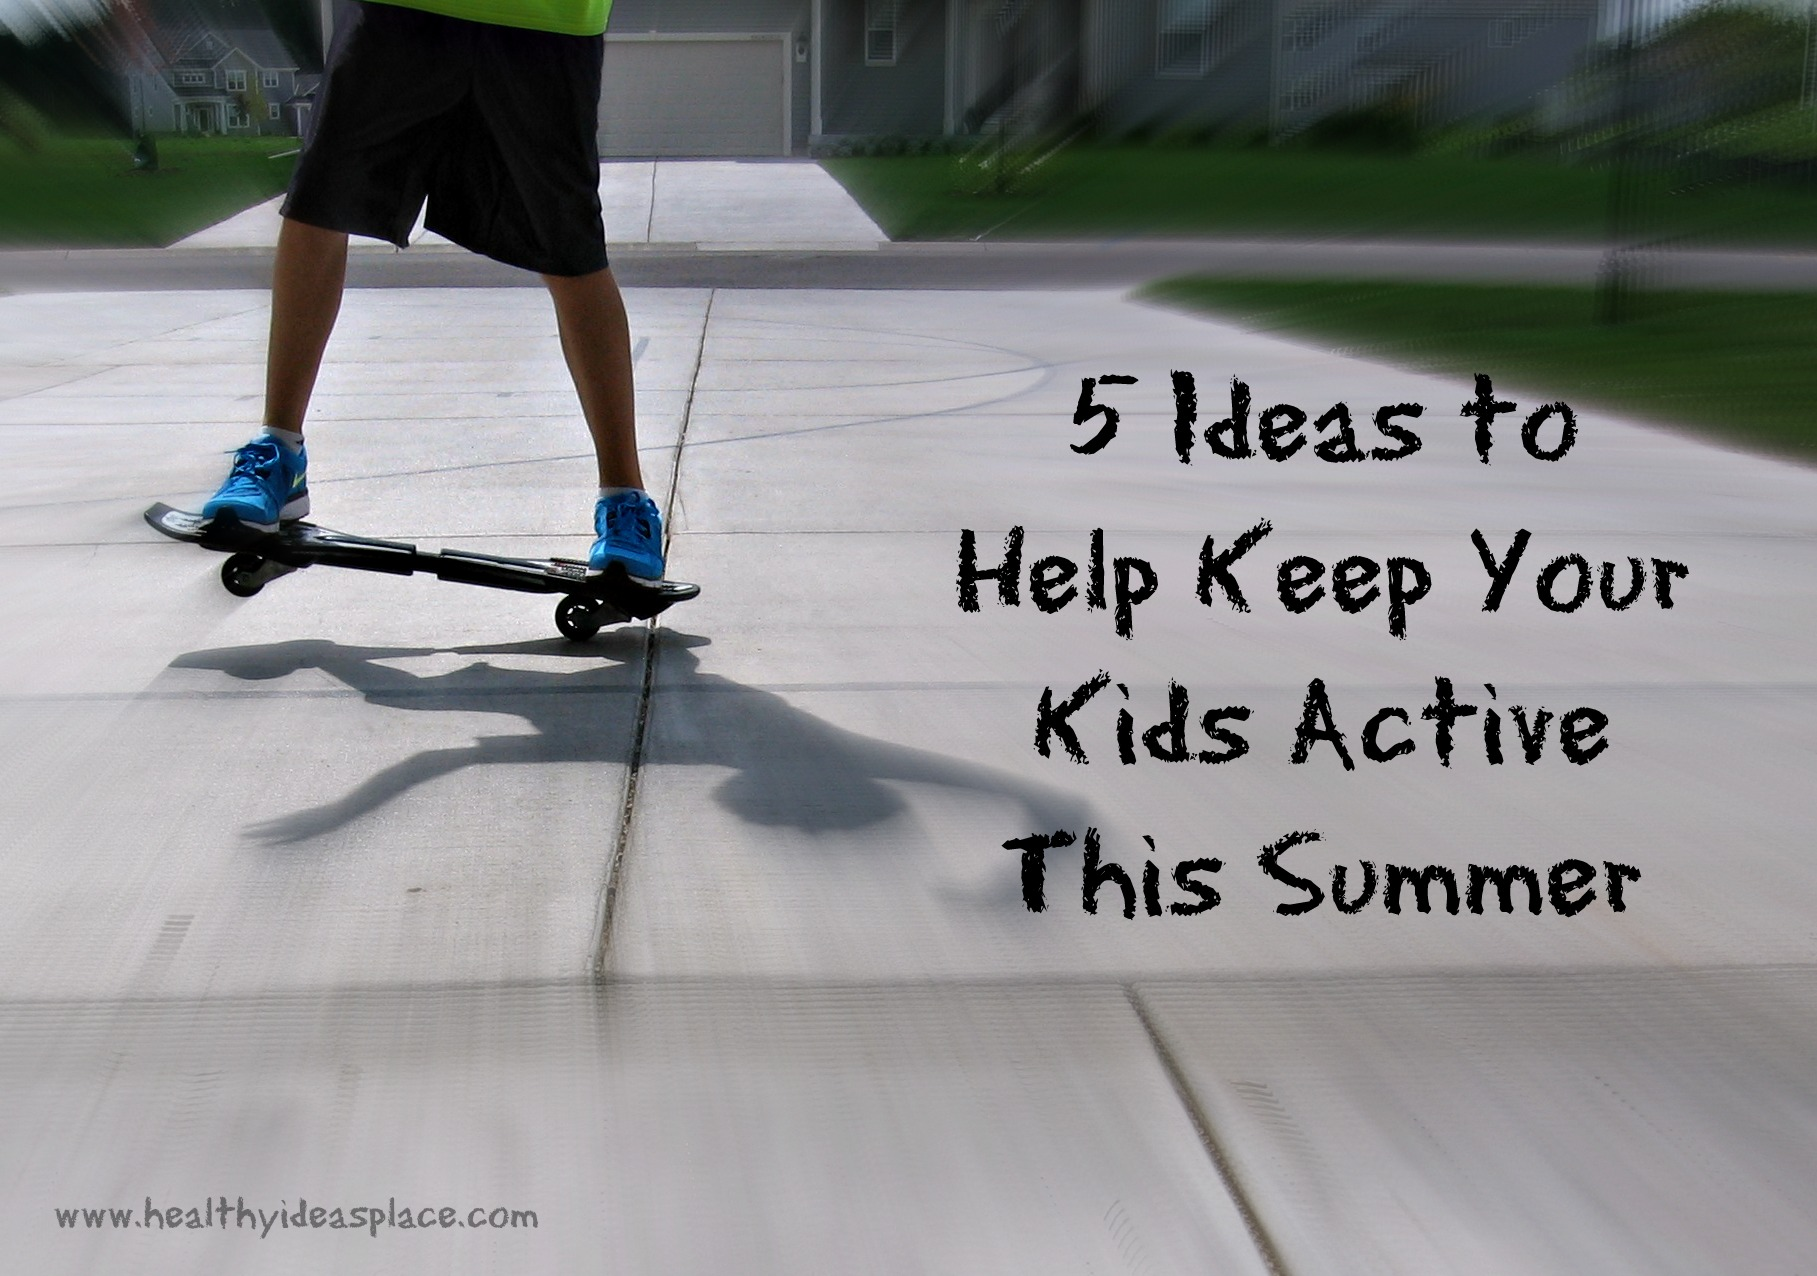 5 Ideas to Help Keep Your Kids Active This Summer